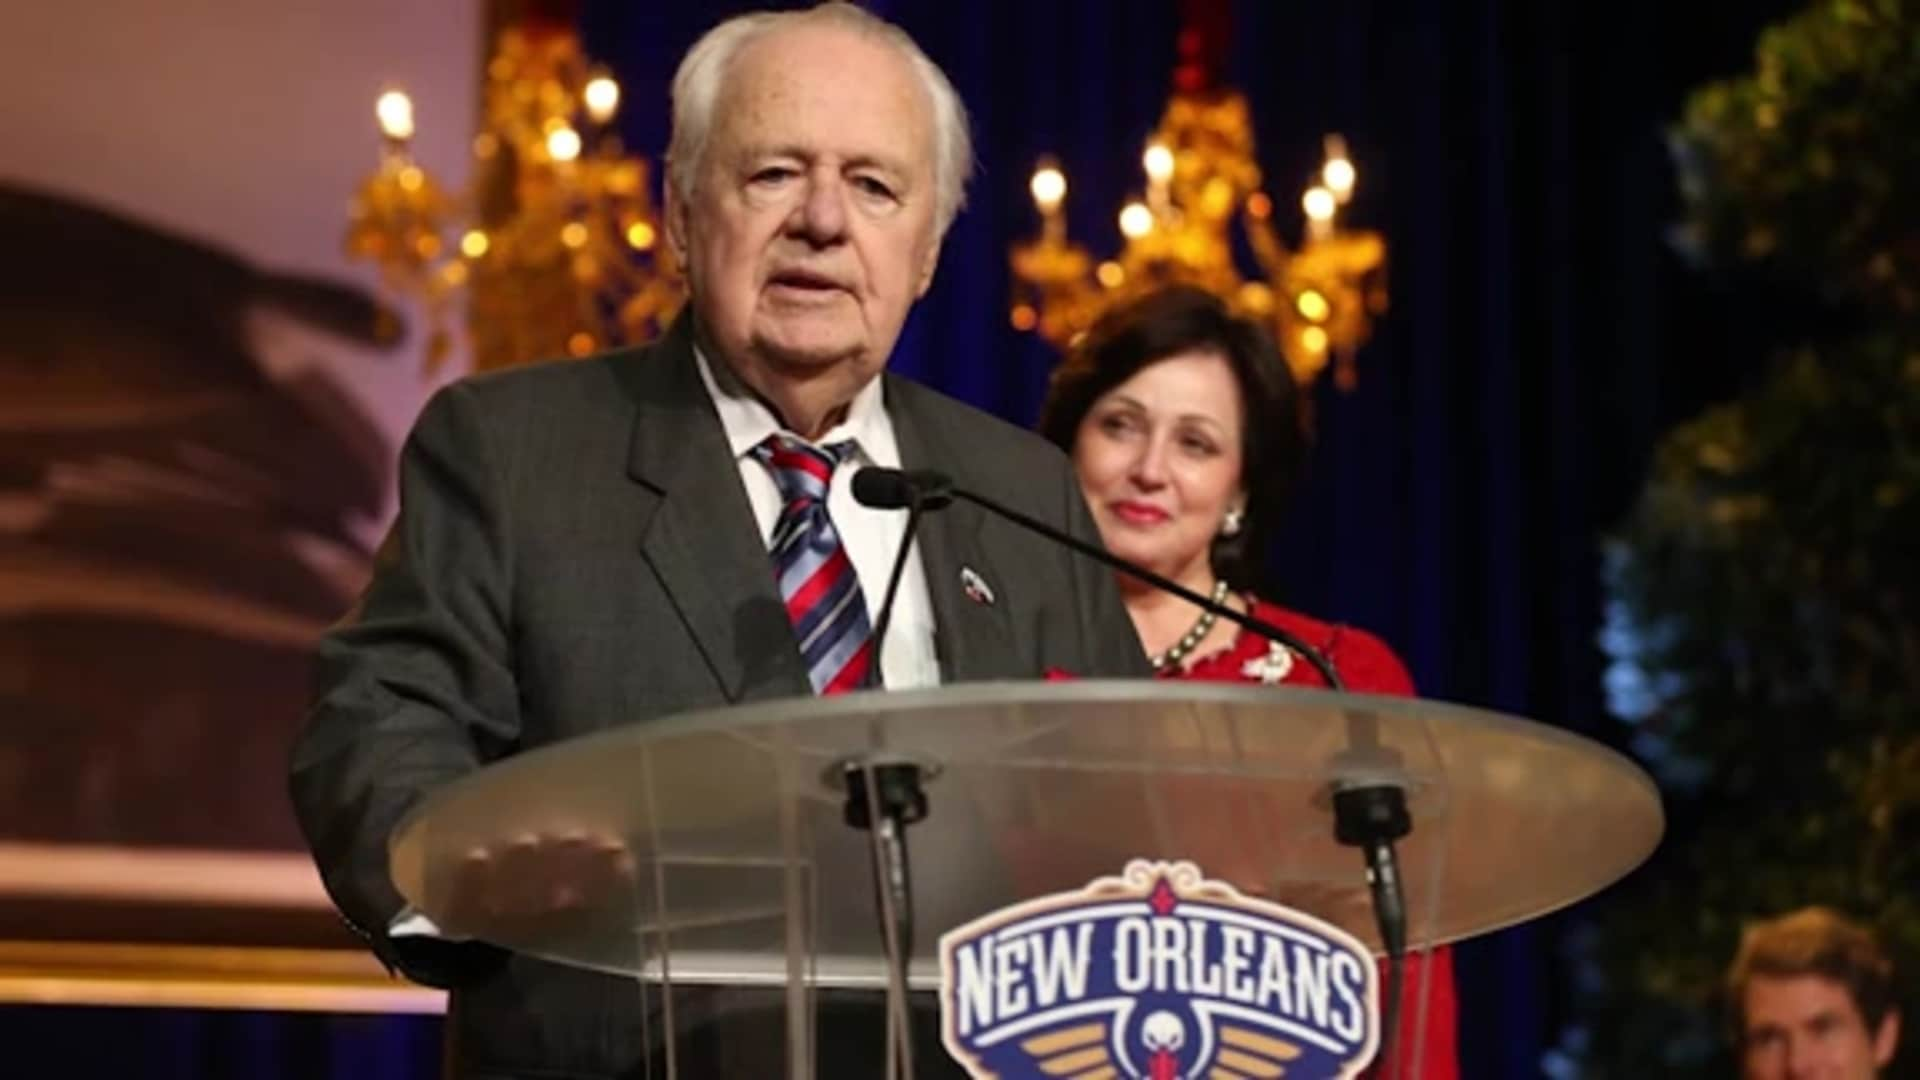 Born on this day: Honoring Tom Benson